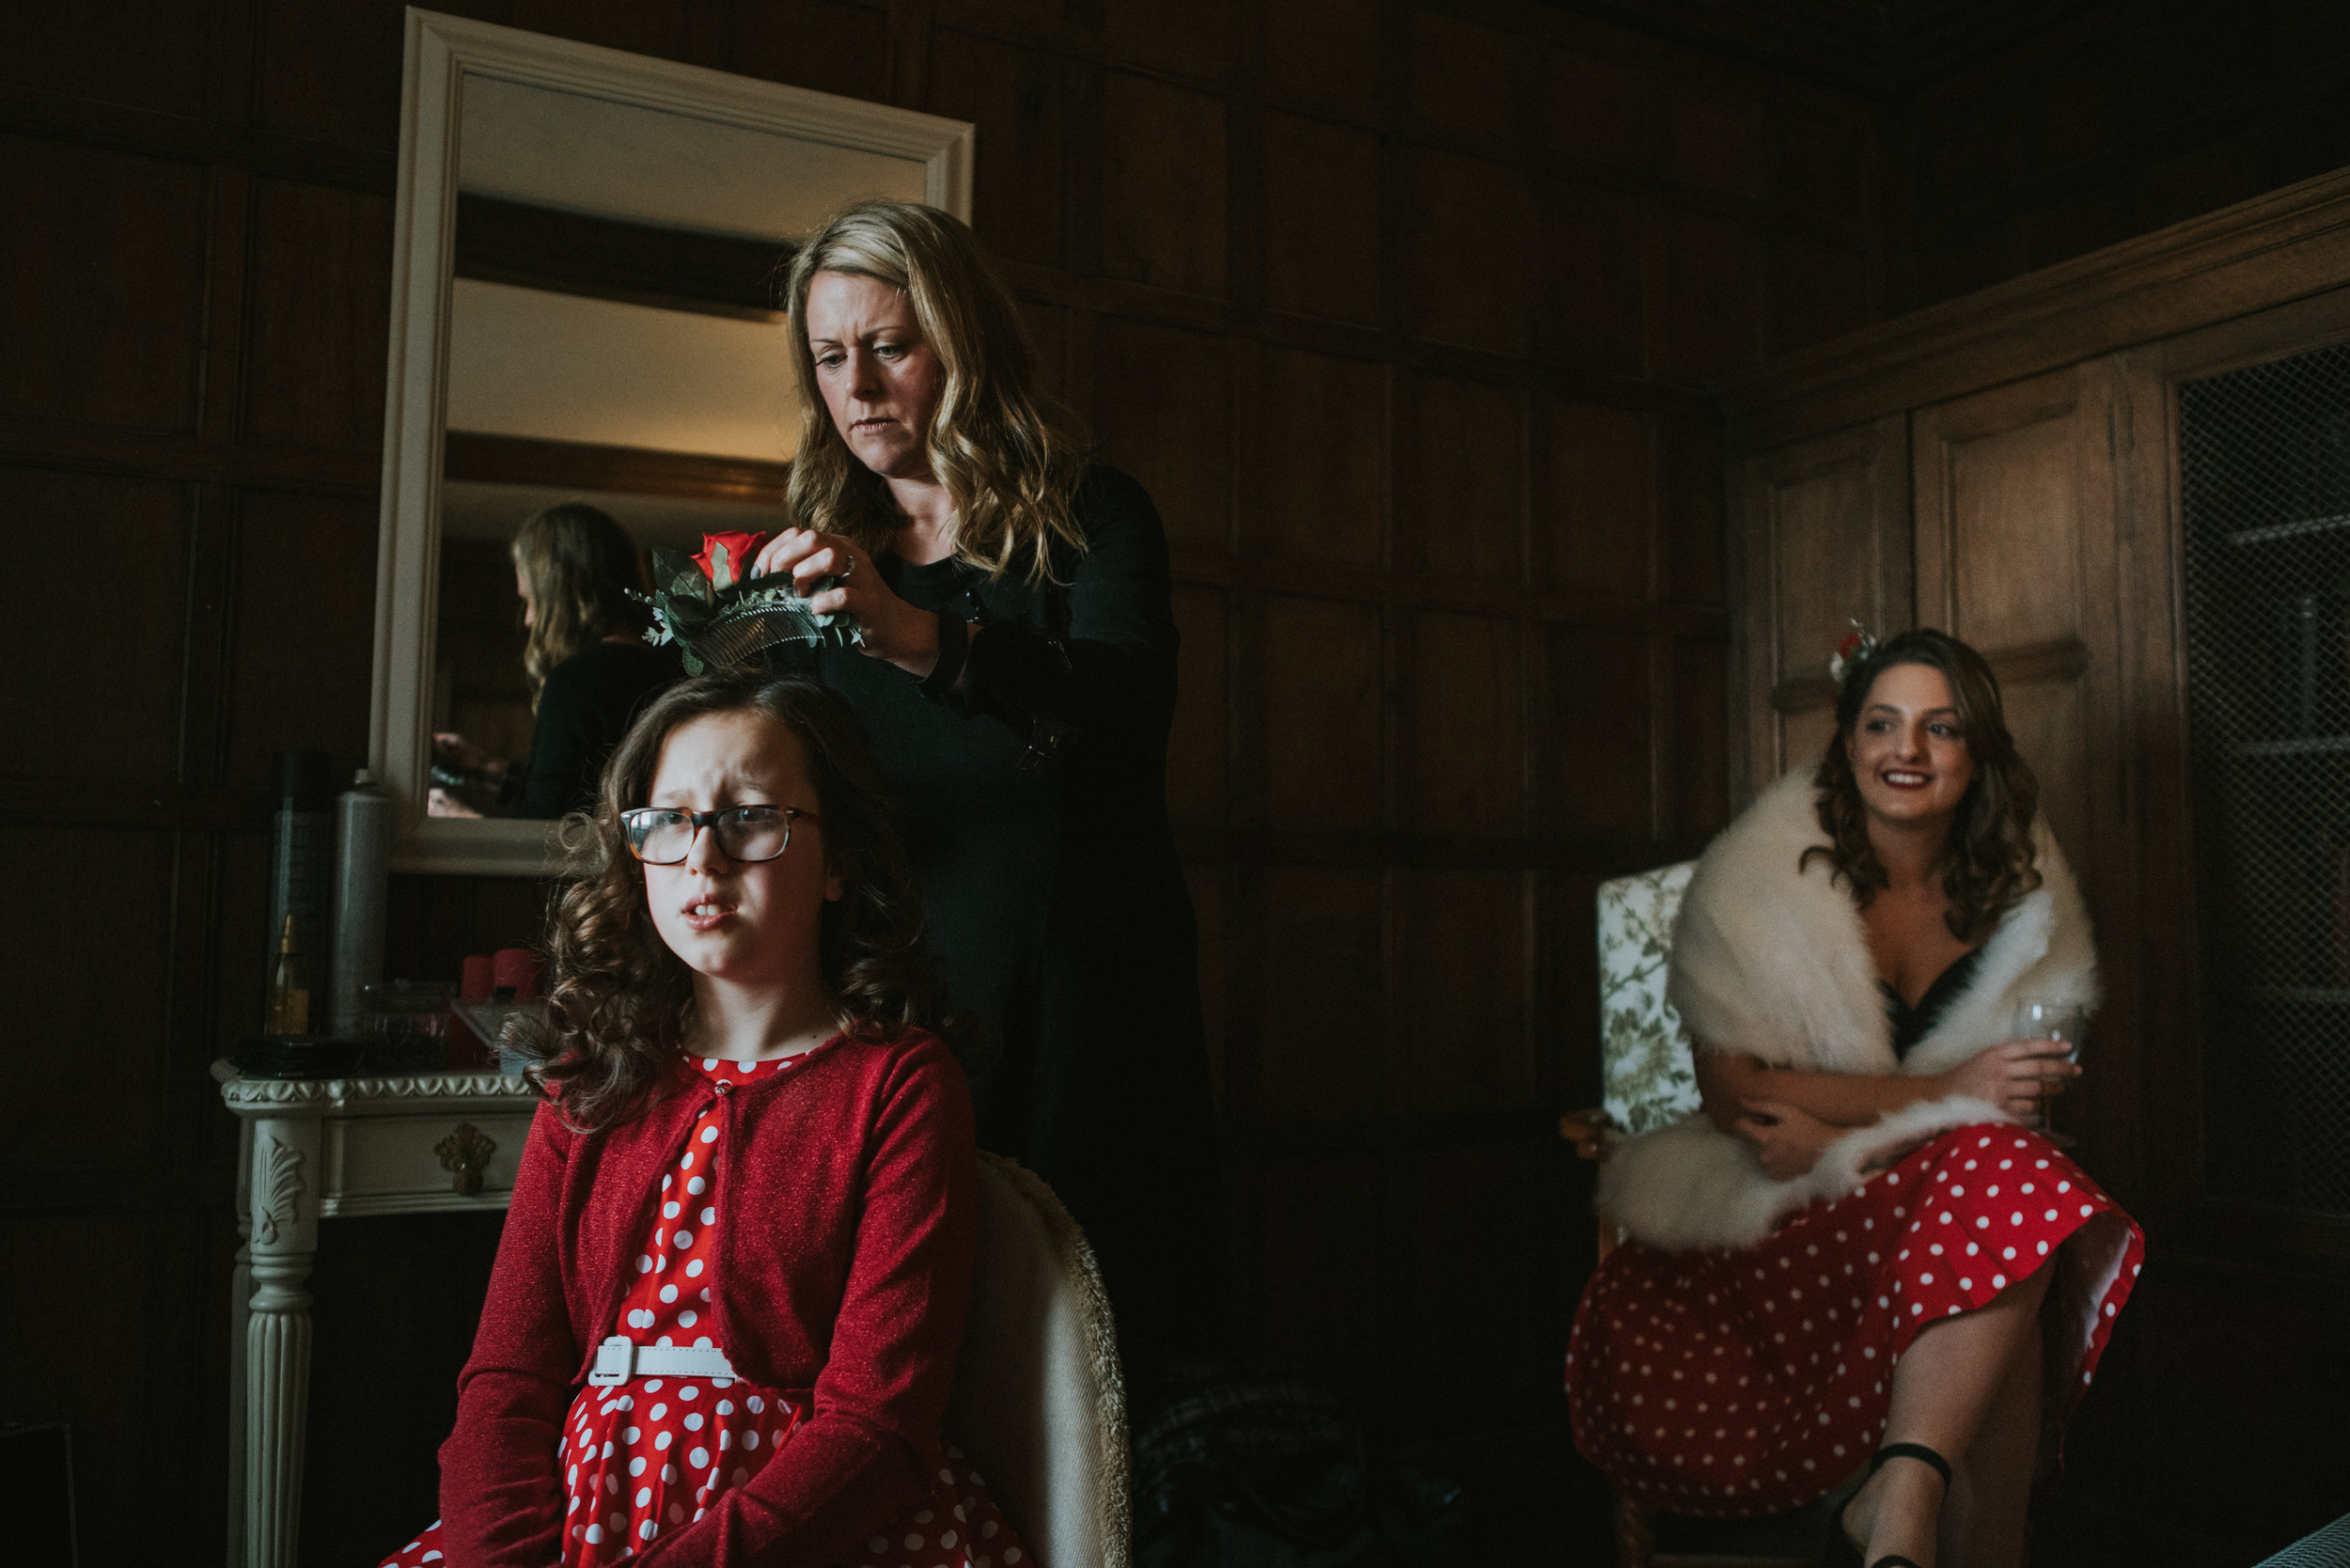 london-kent-wedding-photography-lympne-castle-bride-prep-15